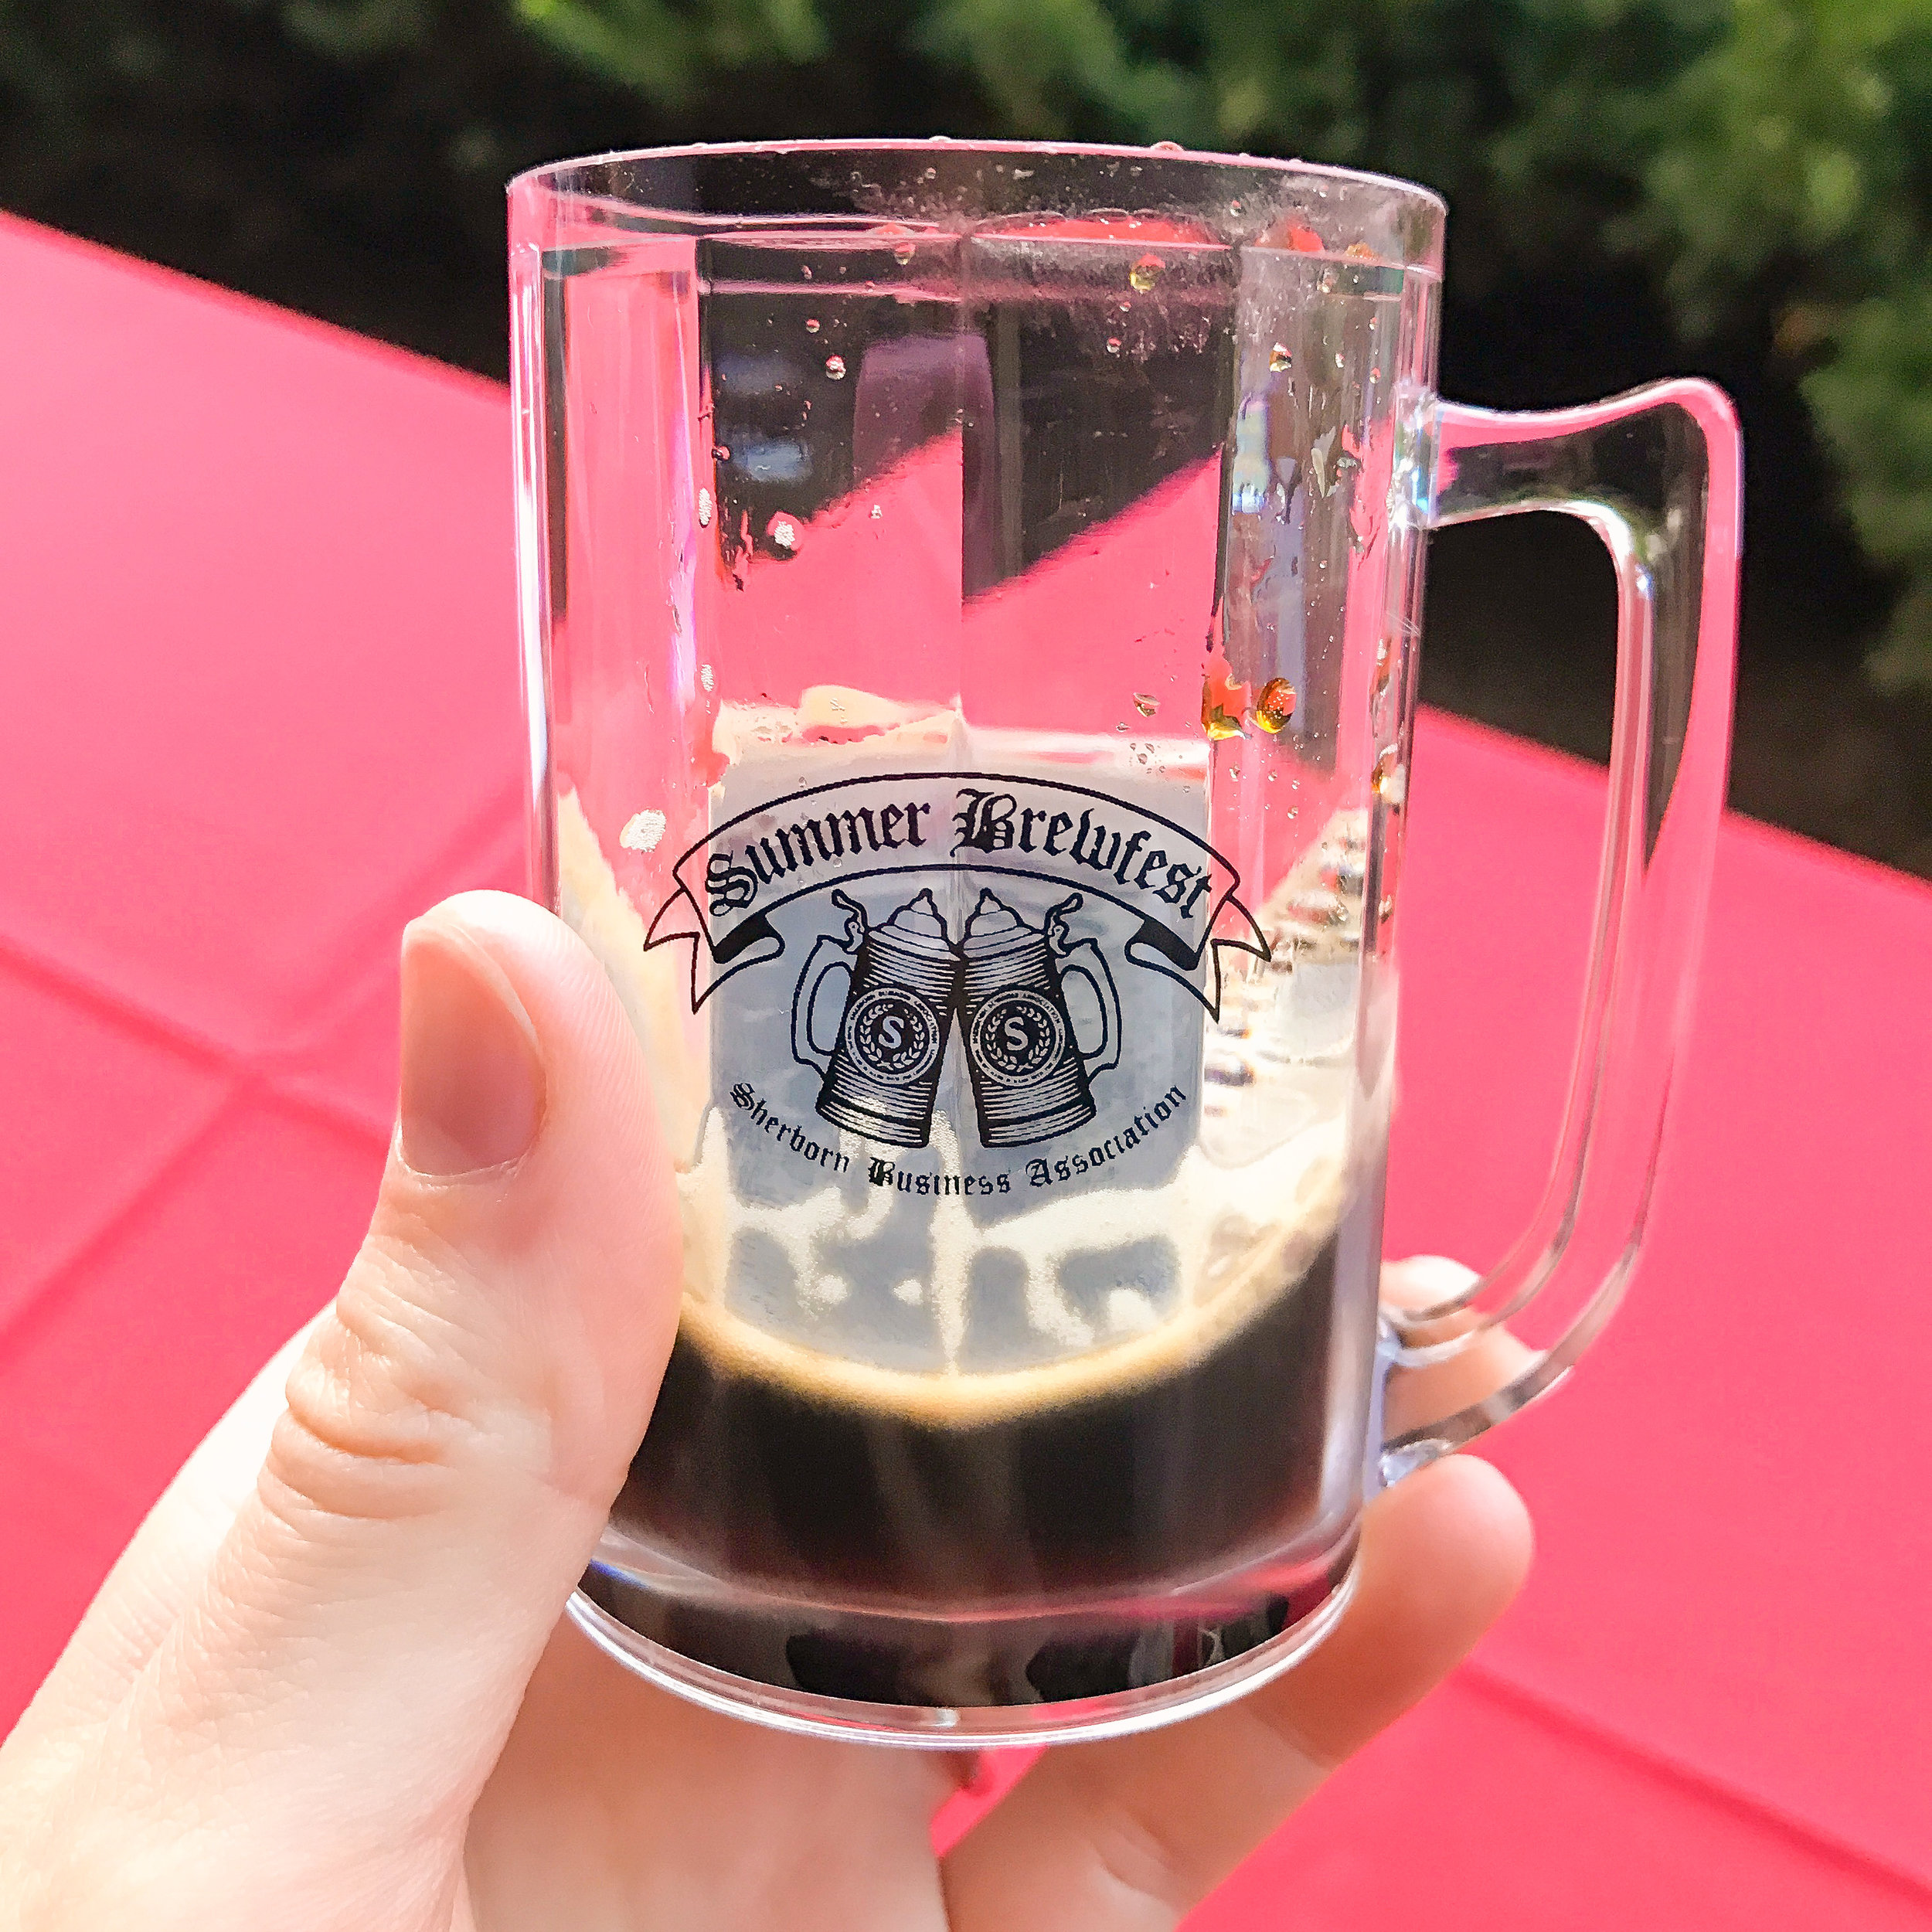 My mug filled with breakfast stout